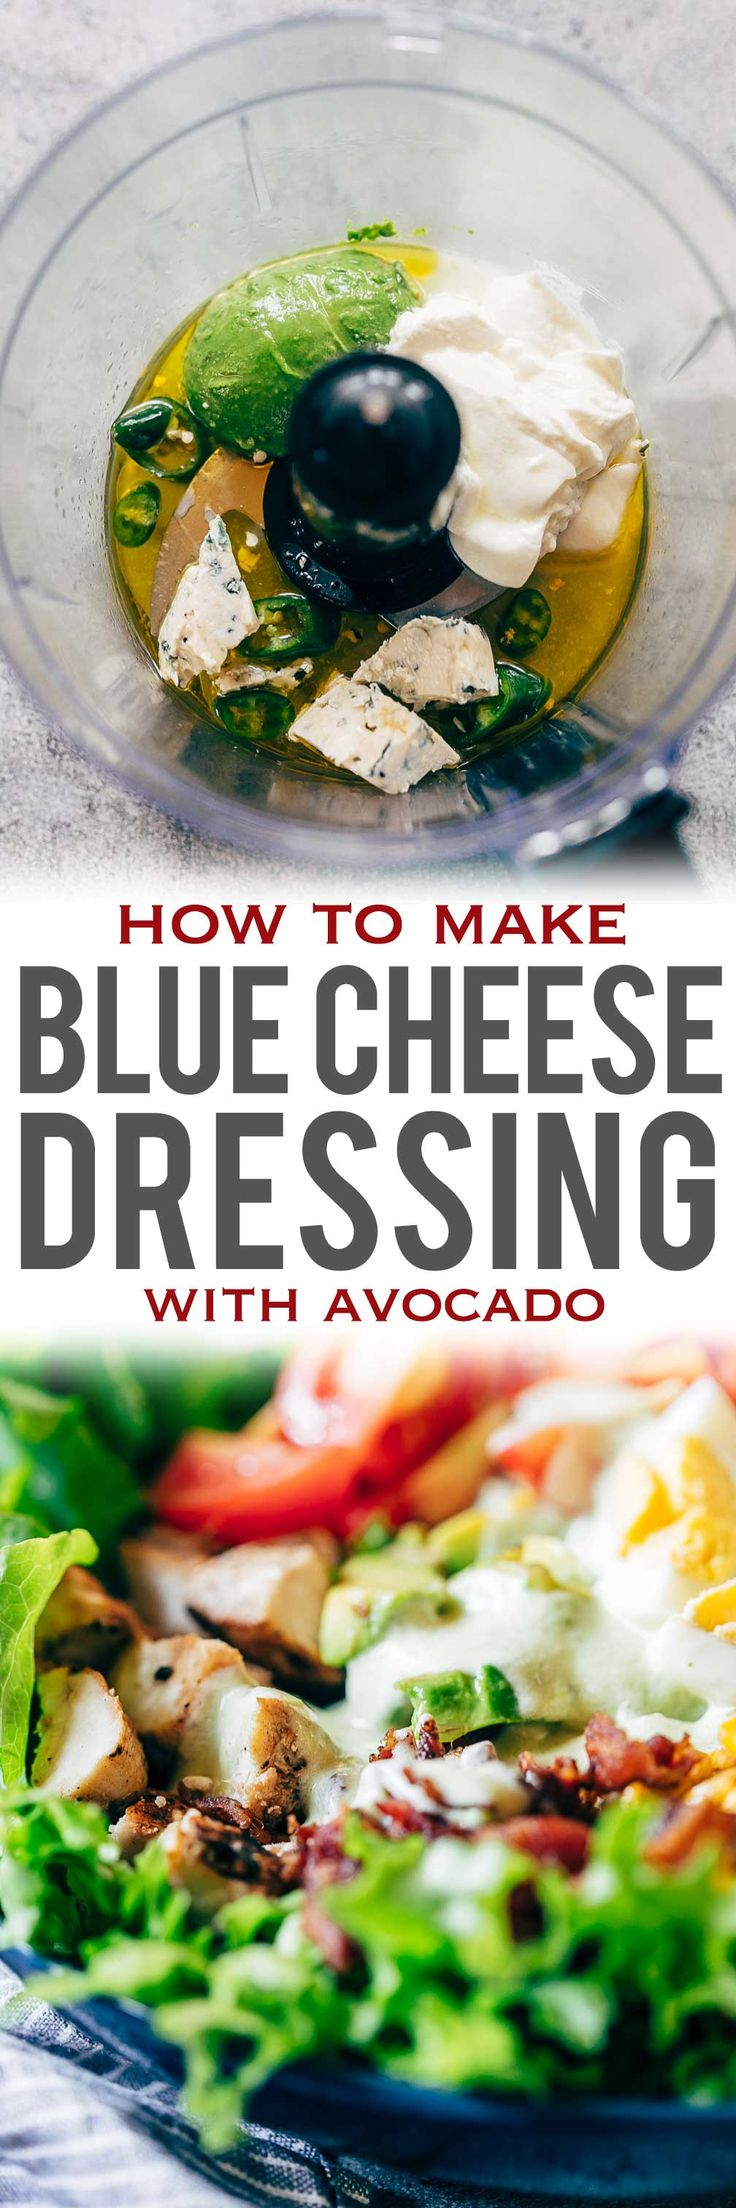 Creamy avocado blue cheese salad dressing is the best homemade blue cheese dressing you'll try – its lighter because it's greek yogurt based and has a sharp taste that's perfect when drizzled on your favourite cobb salad. You can use this dressing to a pasta salad or even use it as a dip! via @my_foodstory